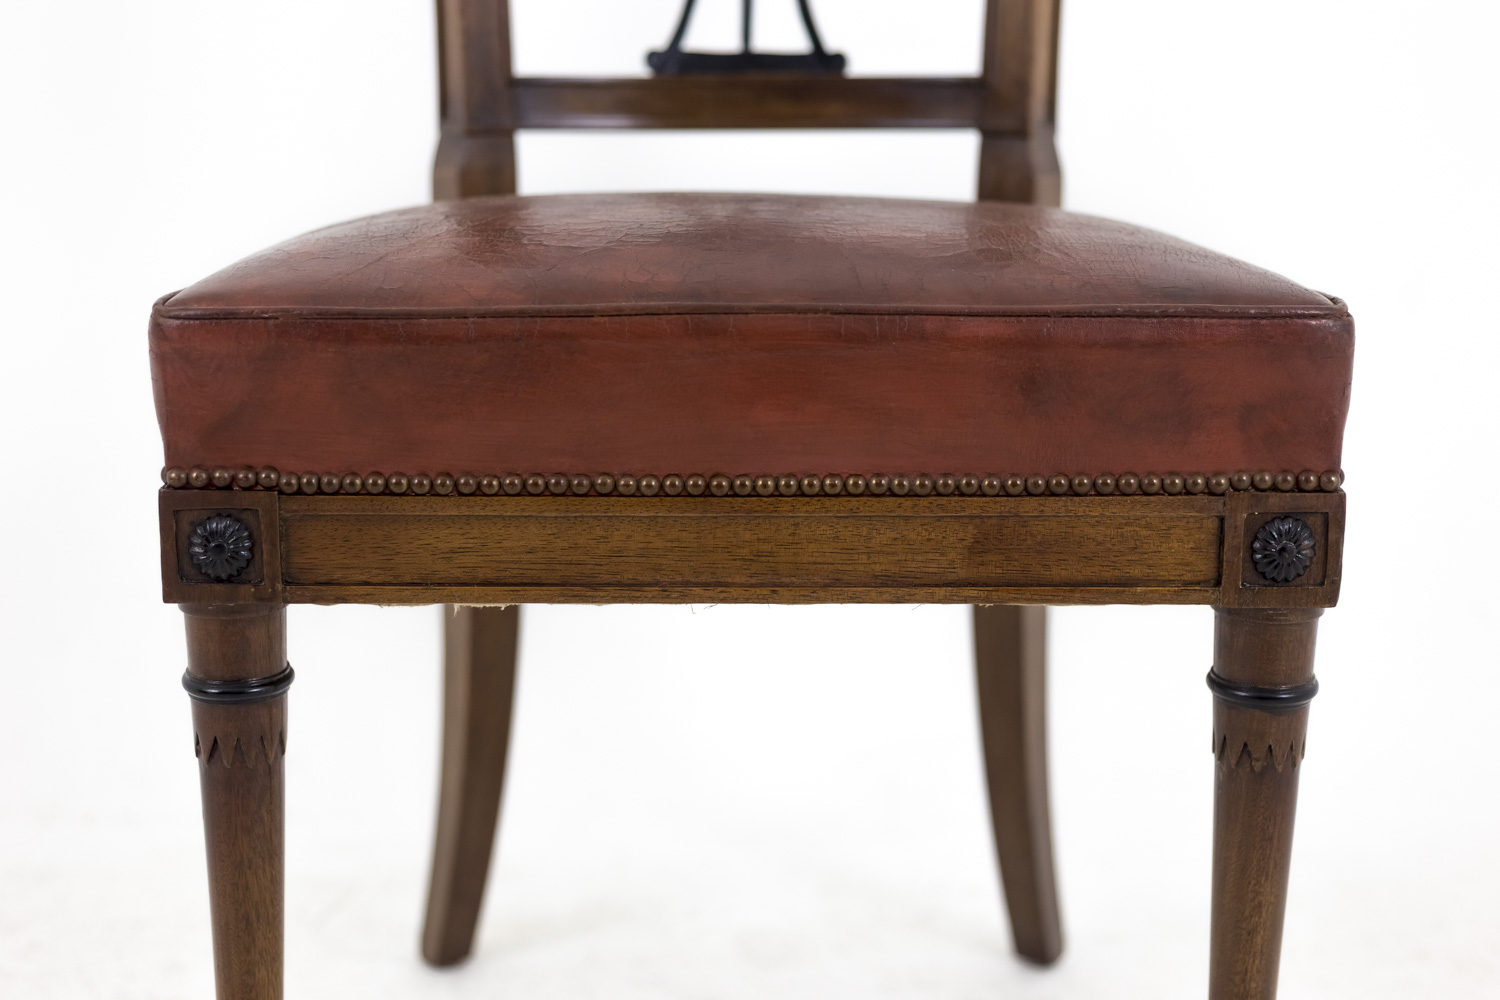 Outstanding Set Of 6 Directoire Style Chairs In Mahogany Early 20Th Century Pabps2019 Chair Design Images Pabps2019Com